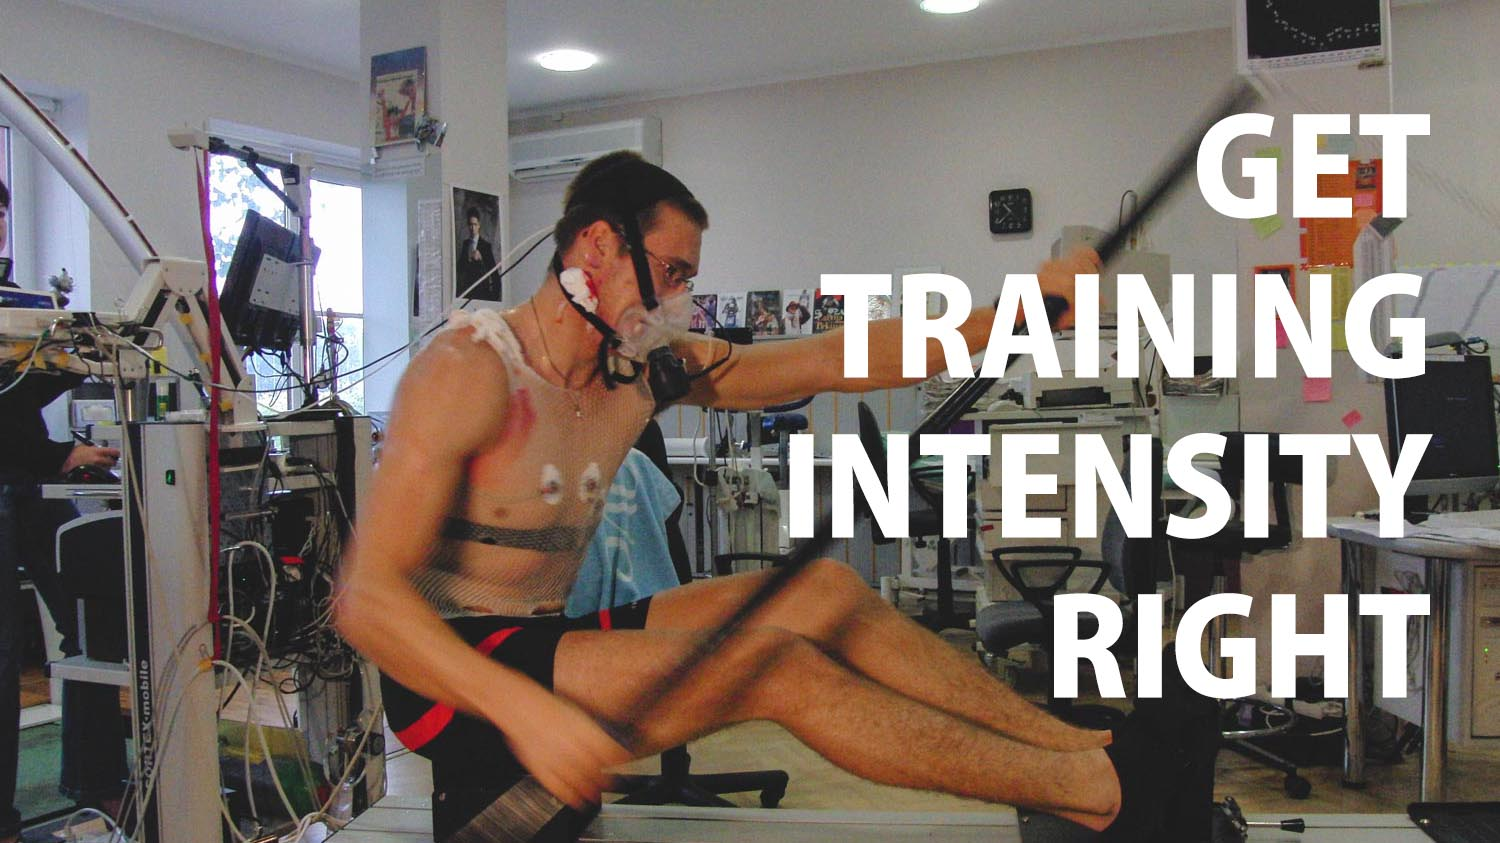 Training with right intensity